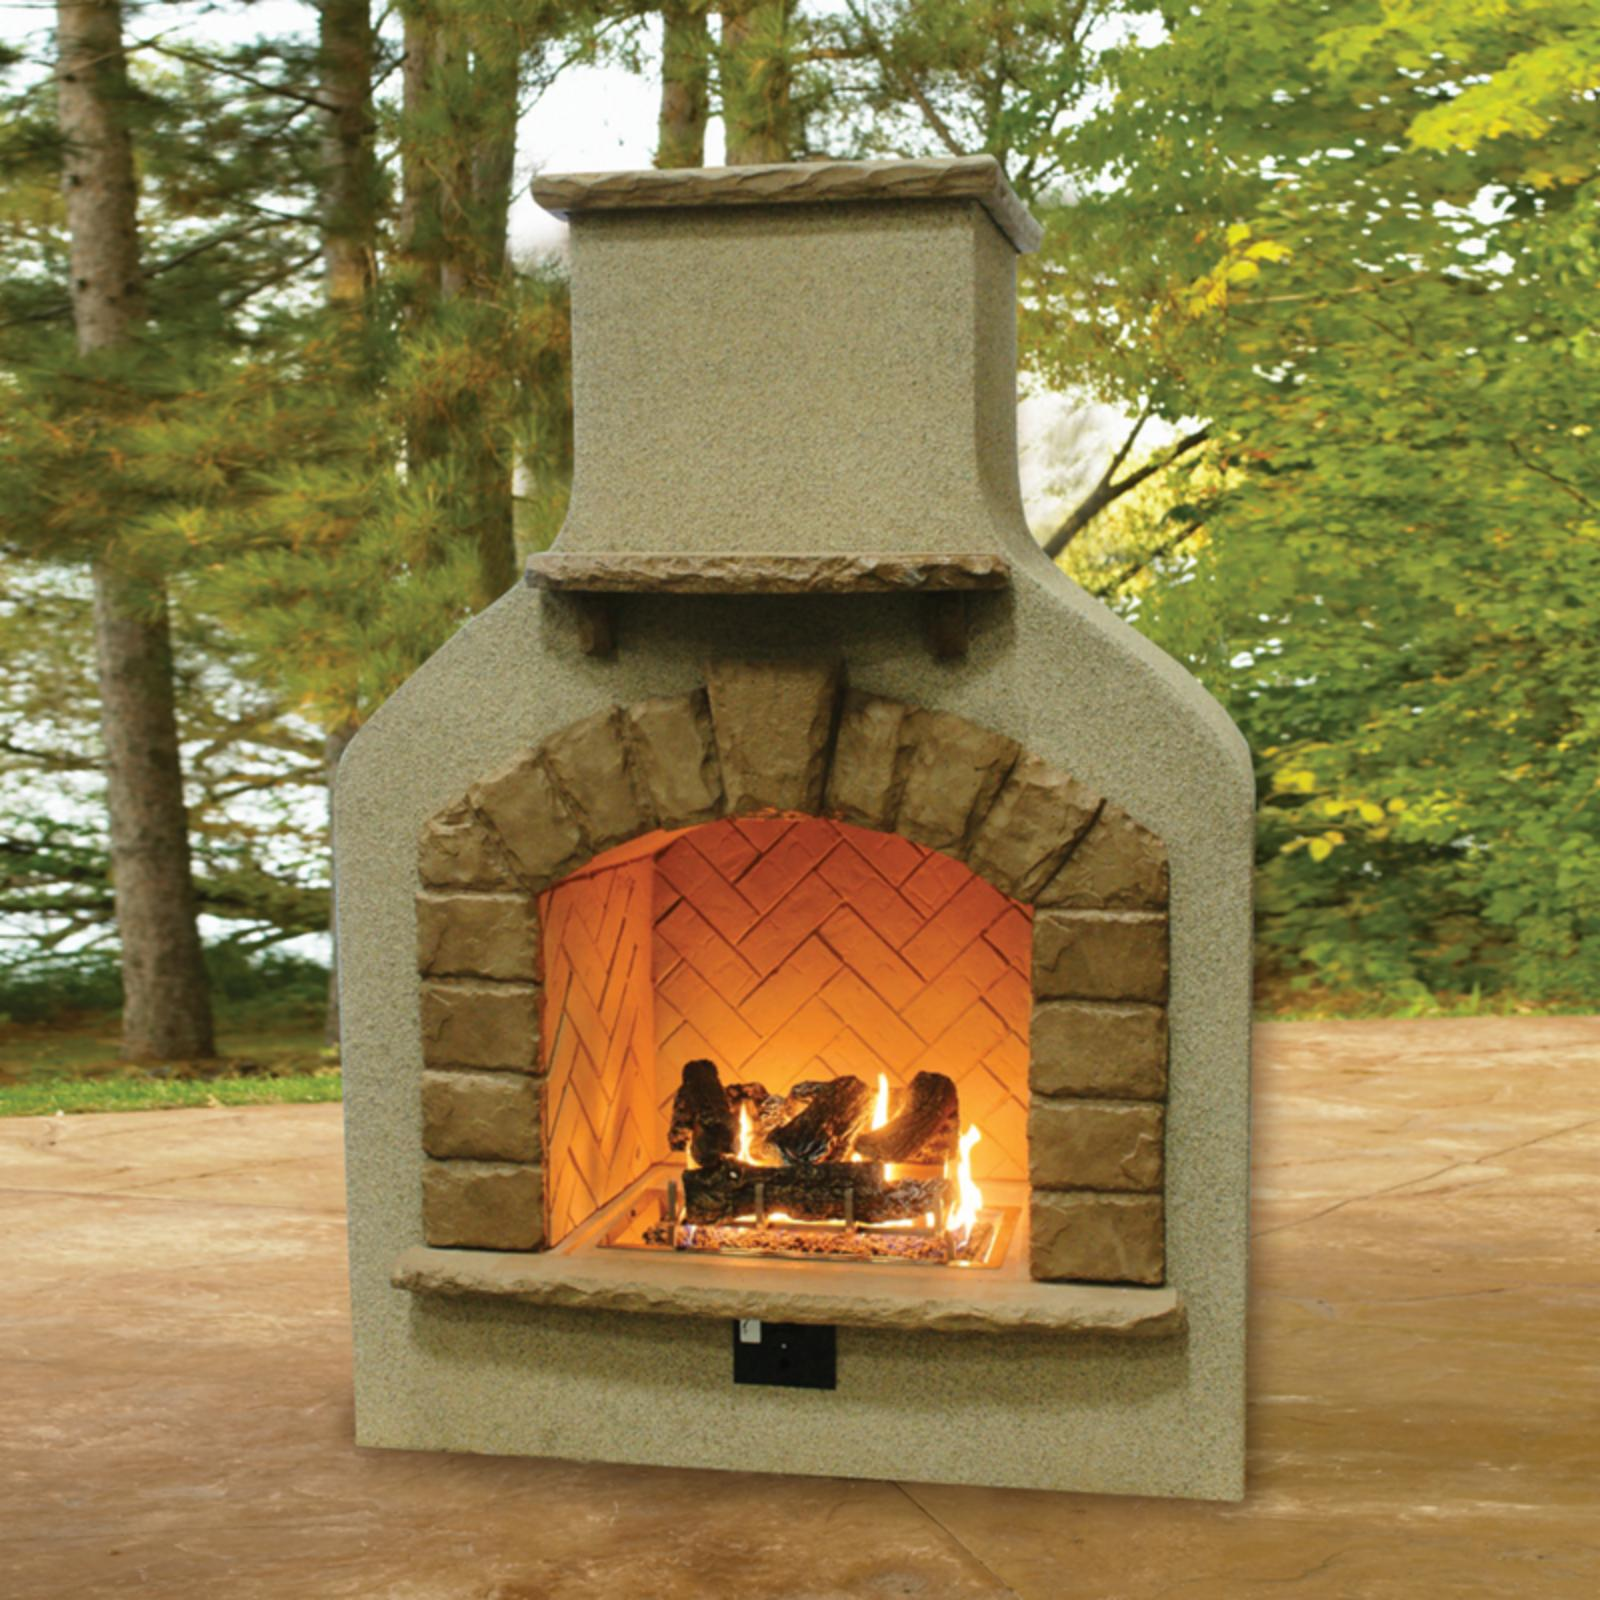 Outdoor GreatRoom Sonoma Gas Fireplace Surround with Opti...